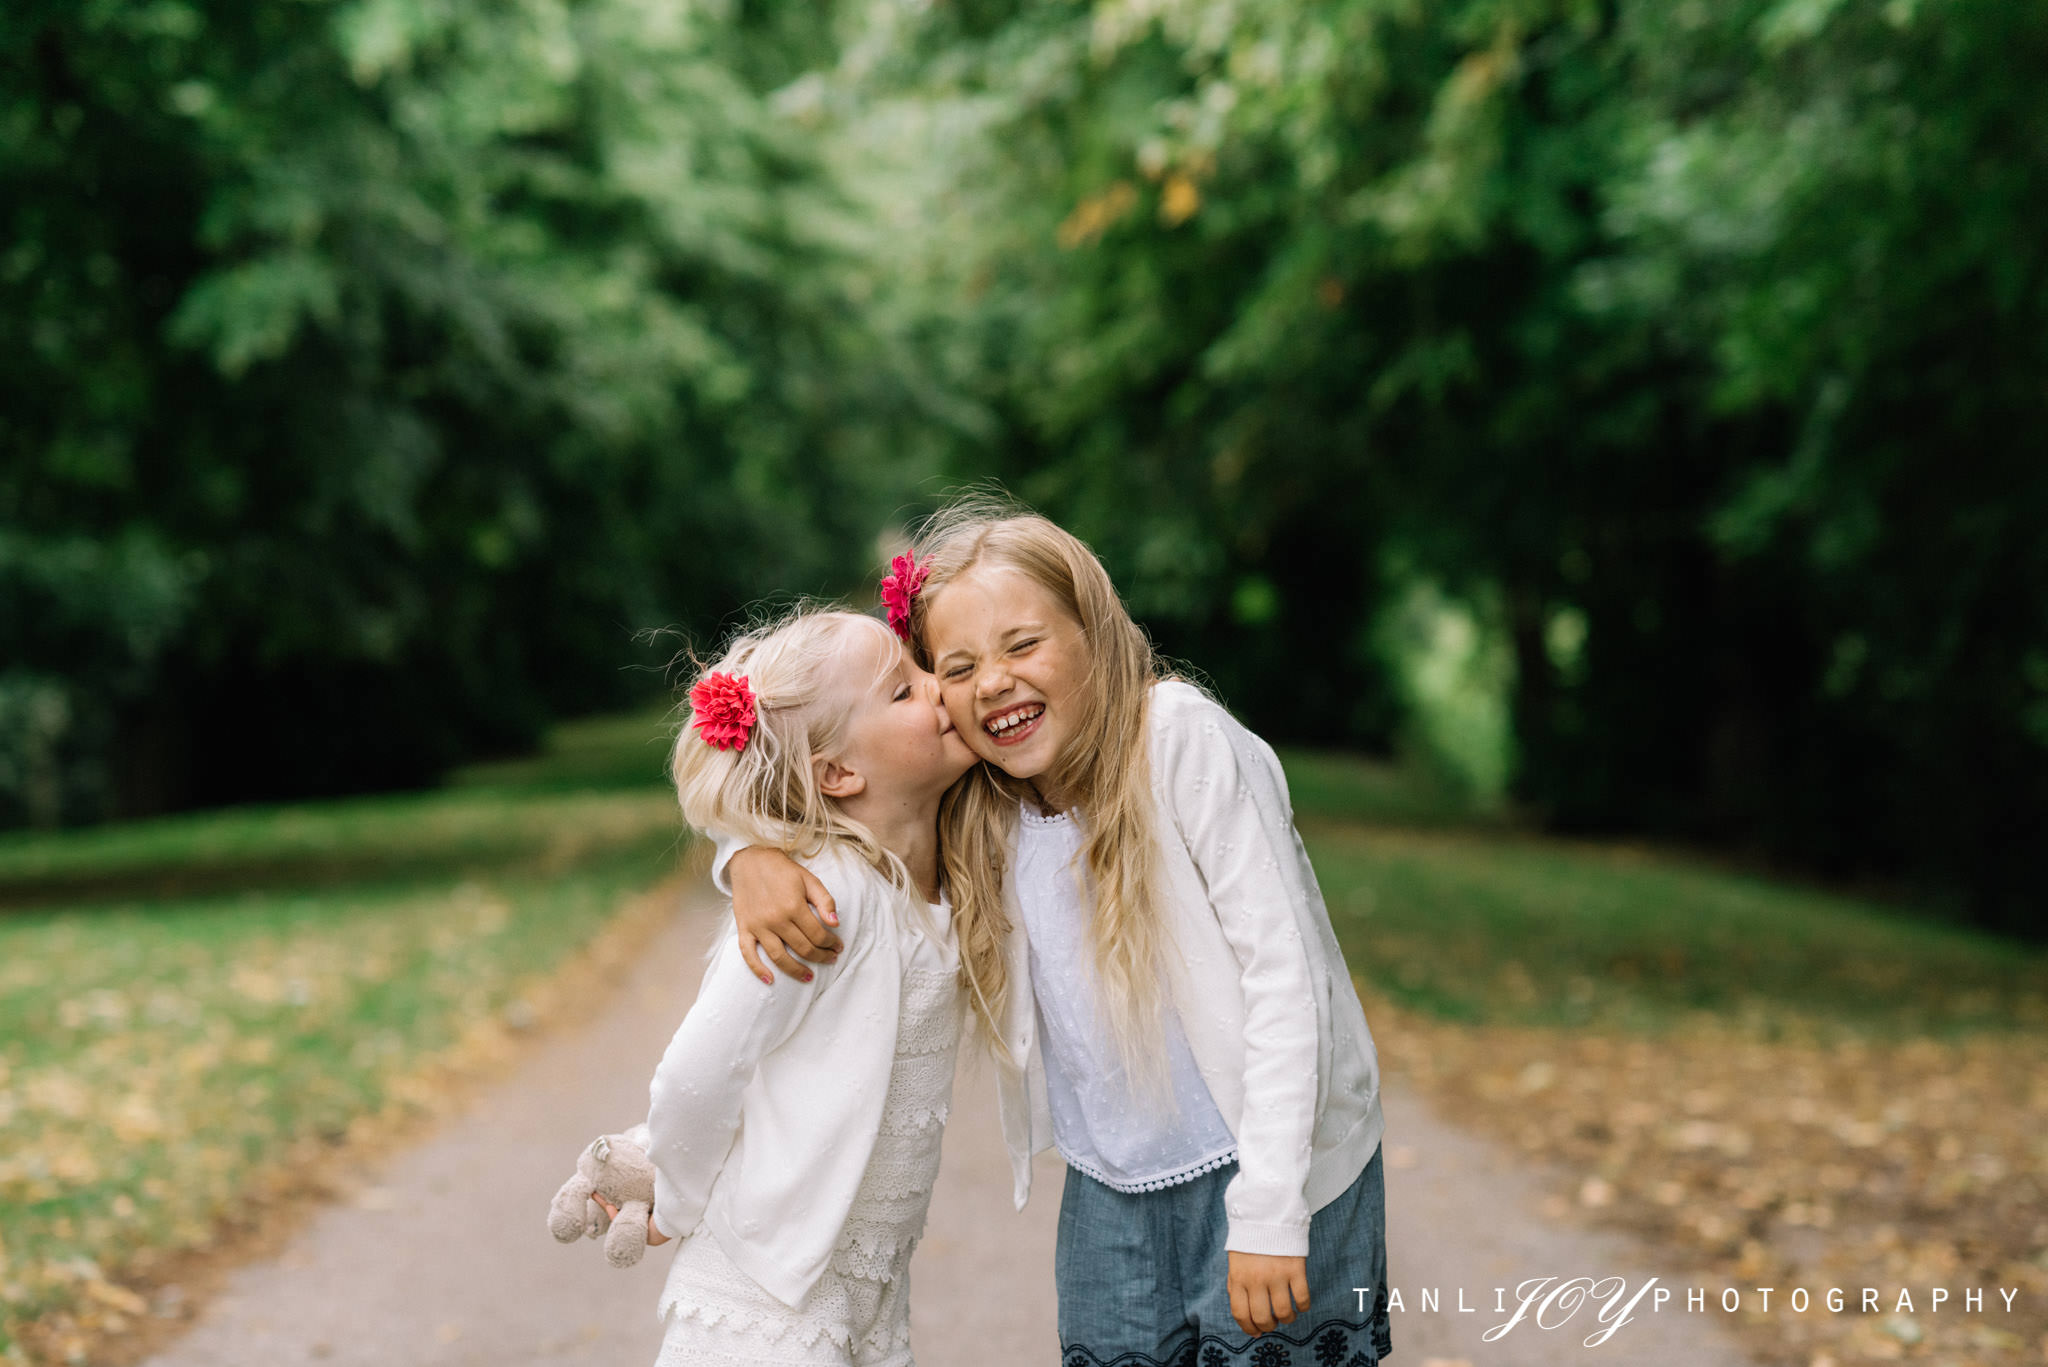 Easy outdoor family photo shoot - Tanli Joy Photography